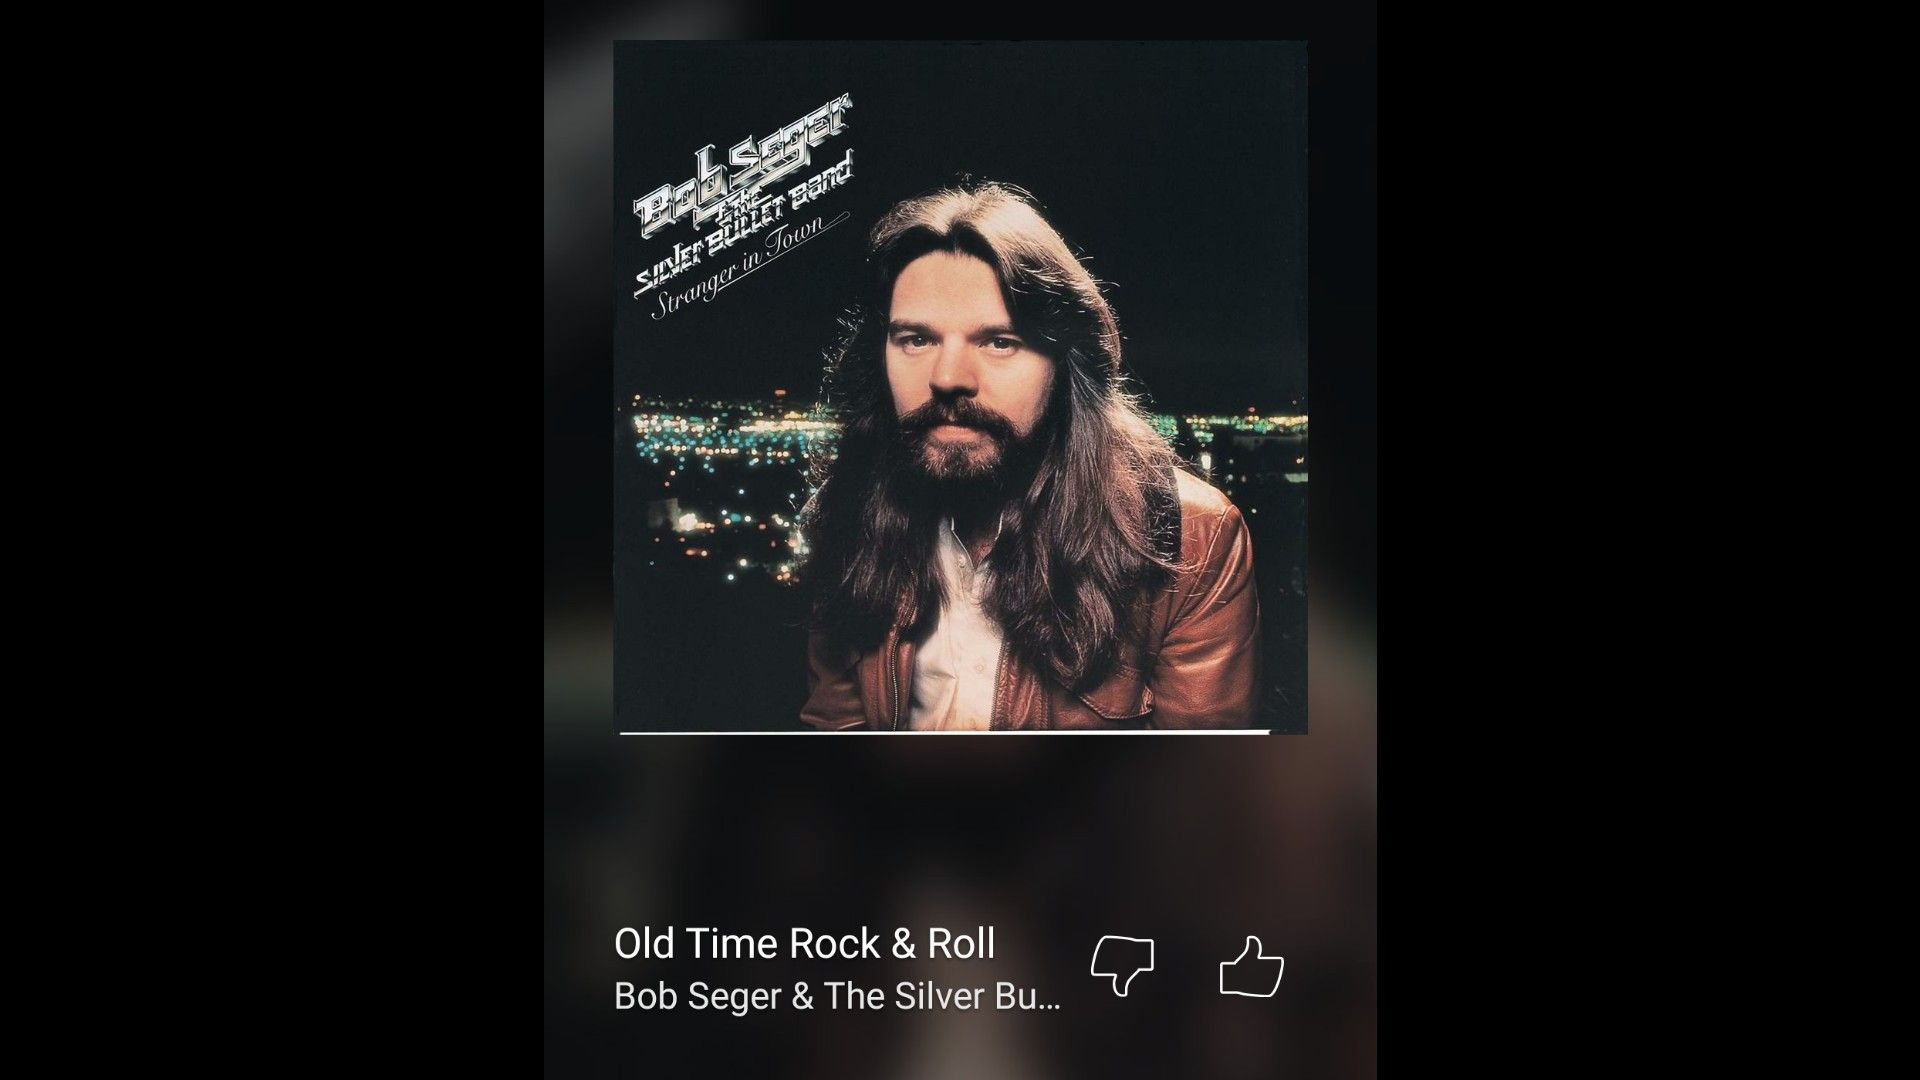 Bob Seger By Amon Davis On Love Of Music Hollywood Night Rock And Roll